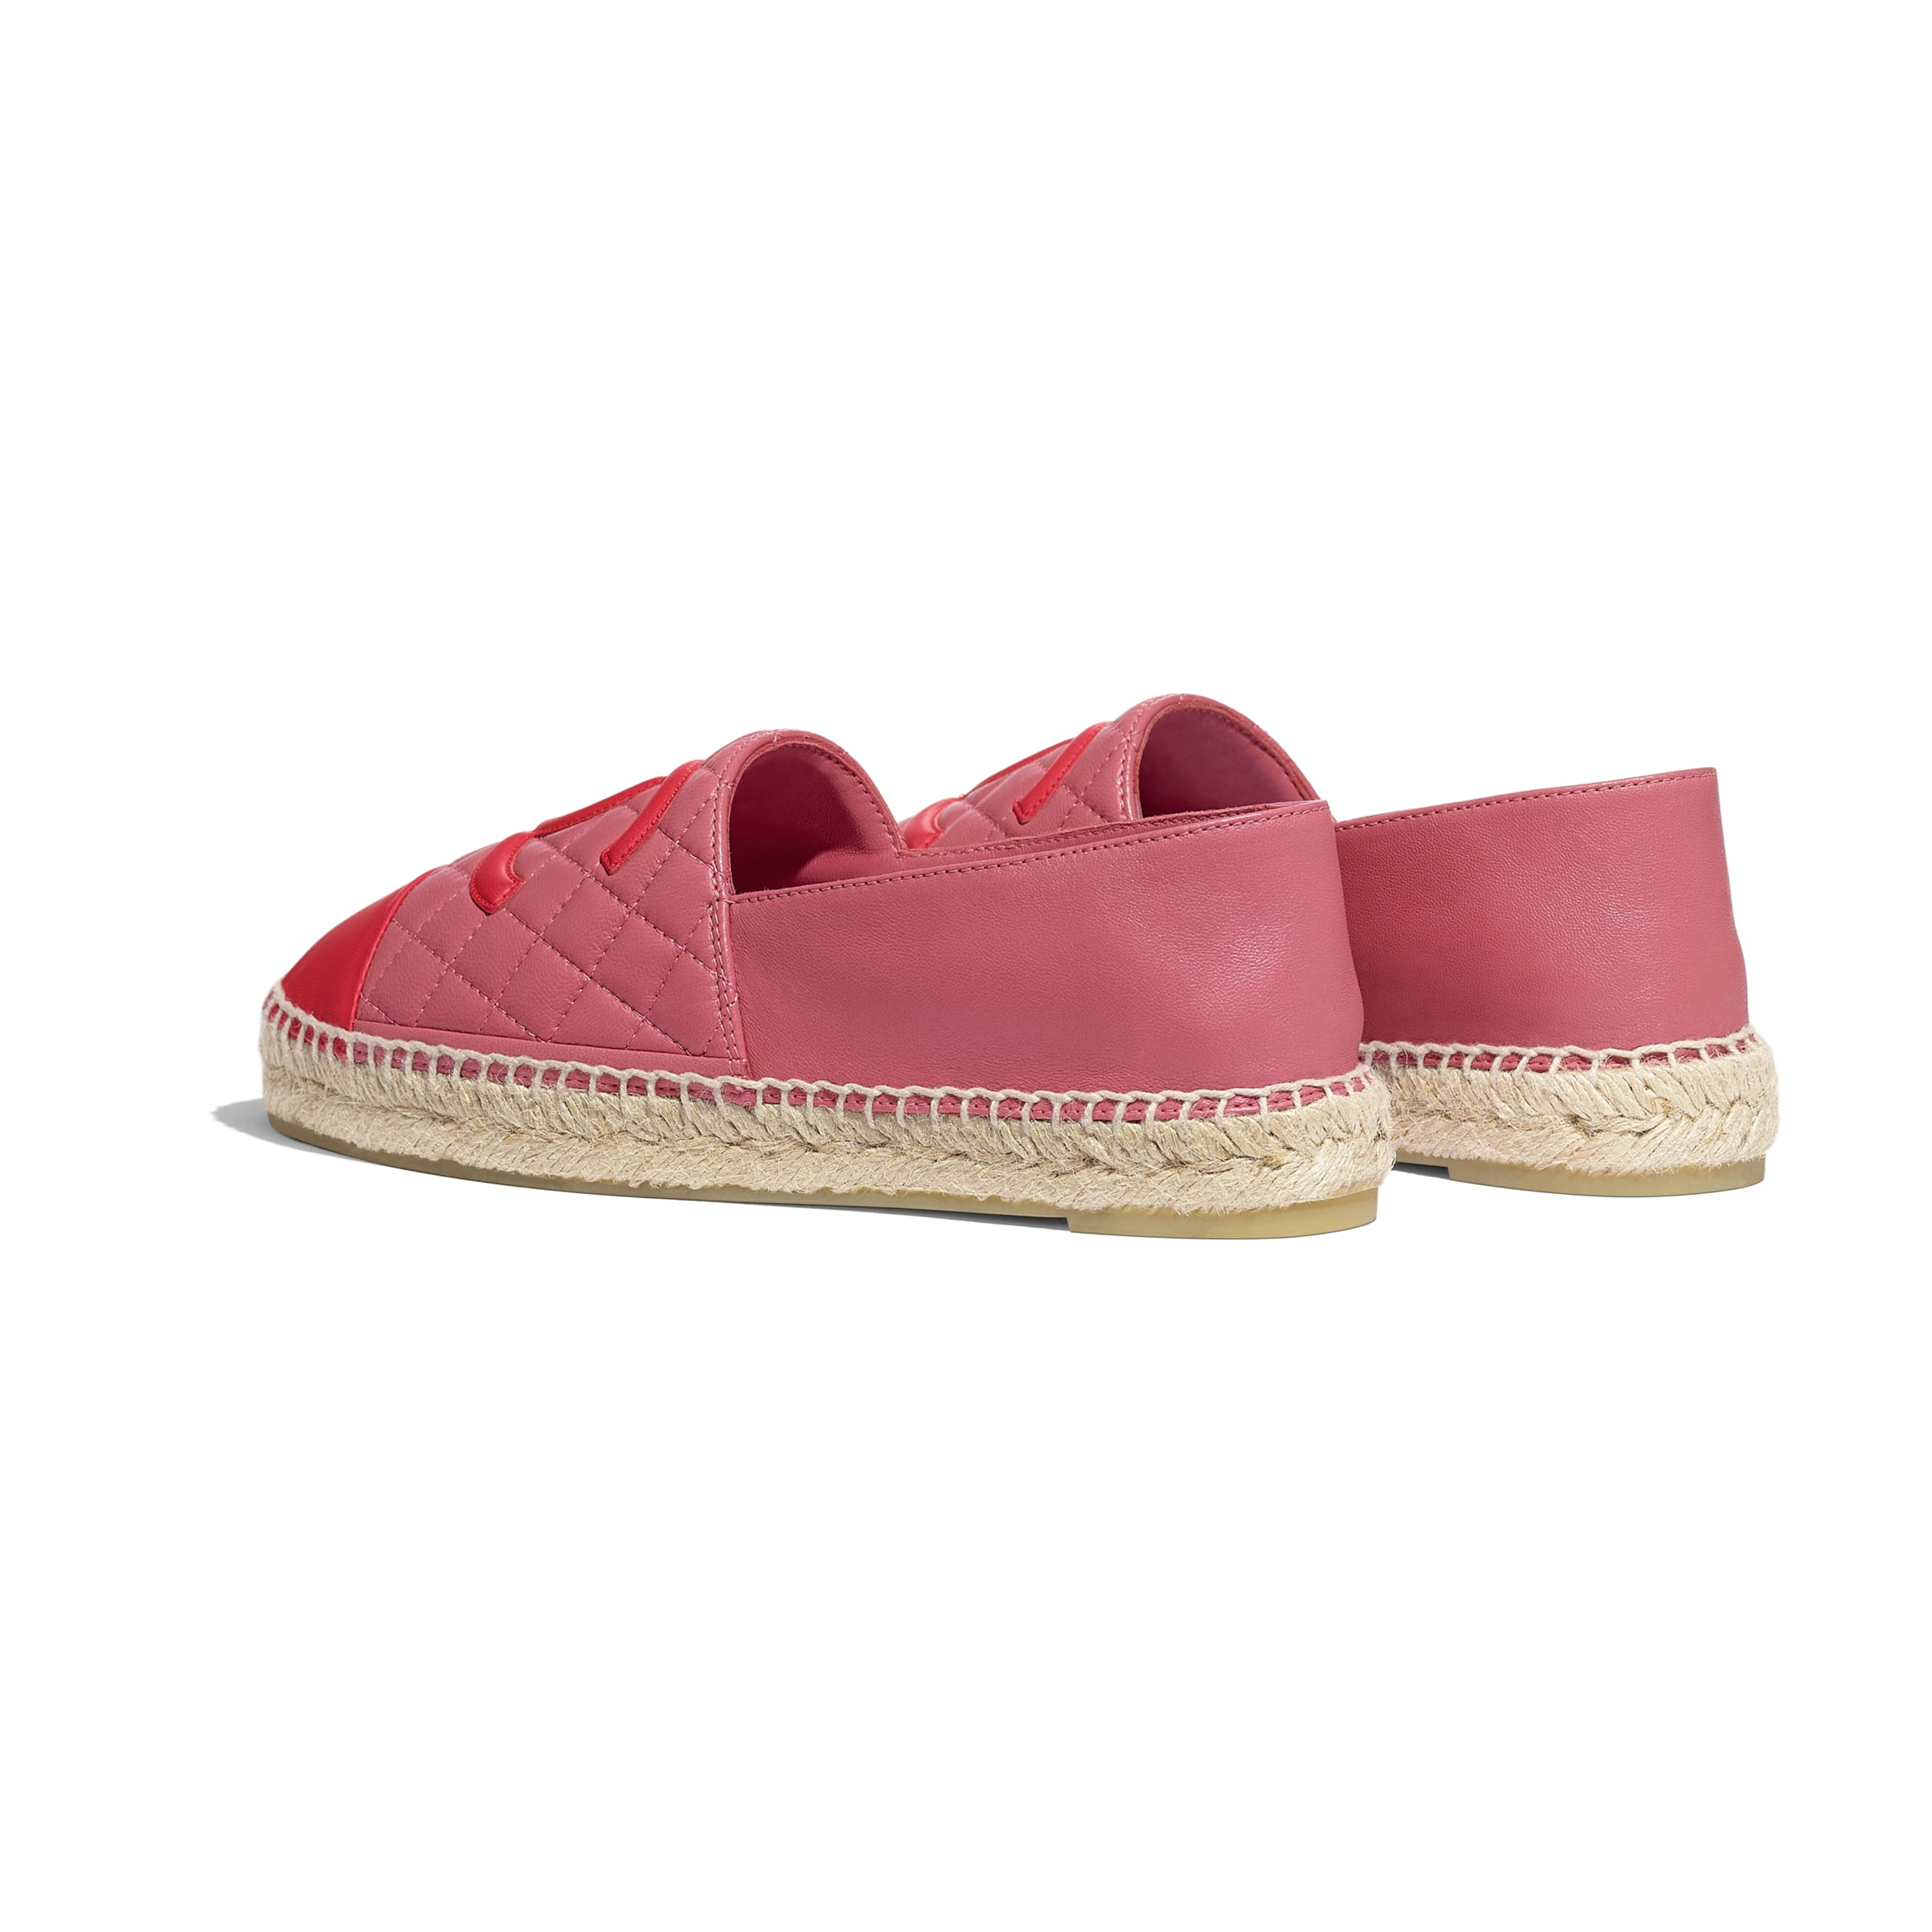 Espadrilles - Pink & red - Lambskin - CHANEL - Other view - see standard sized version